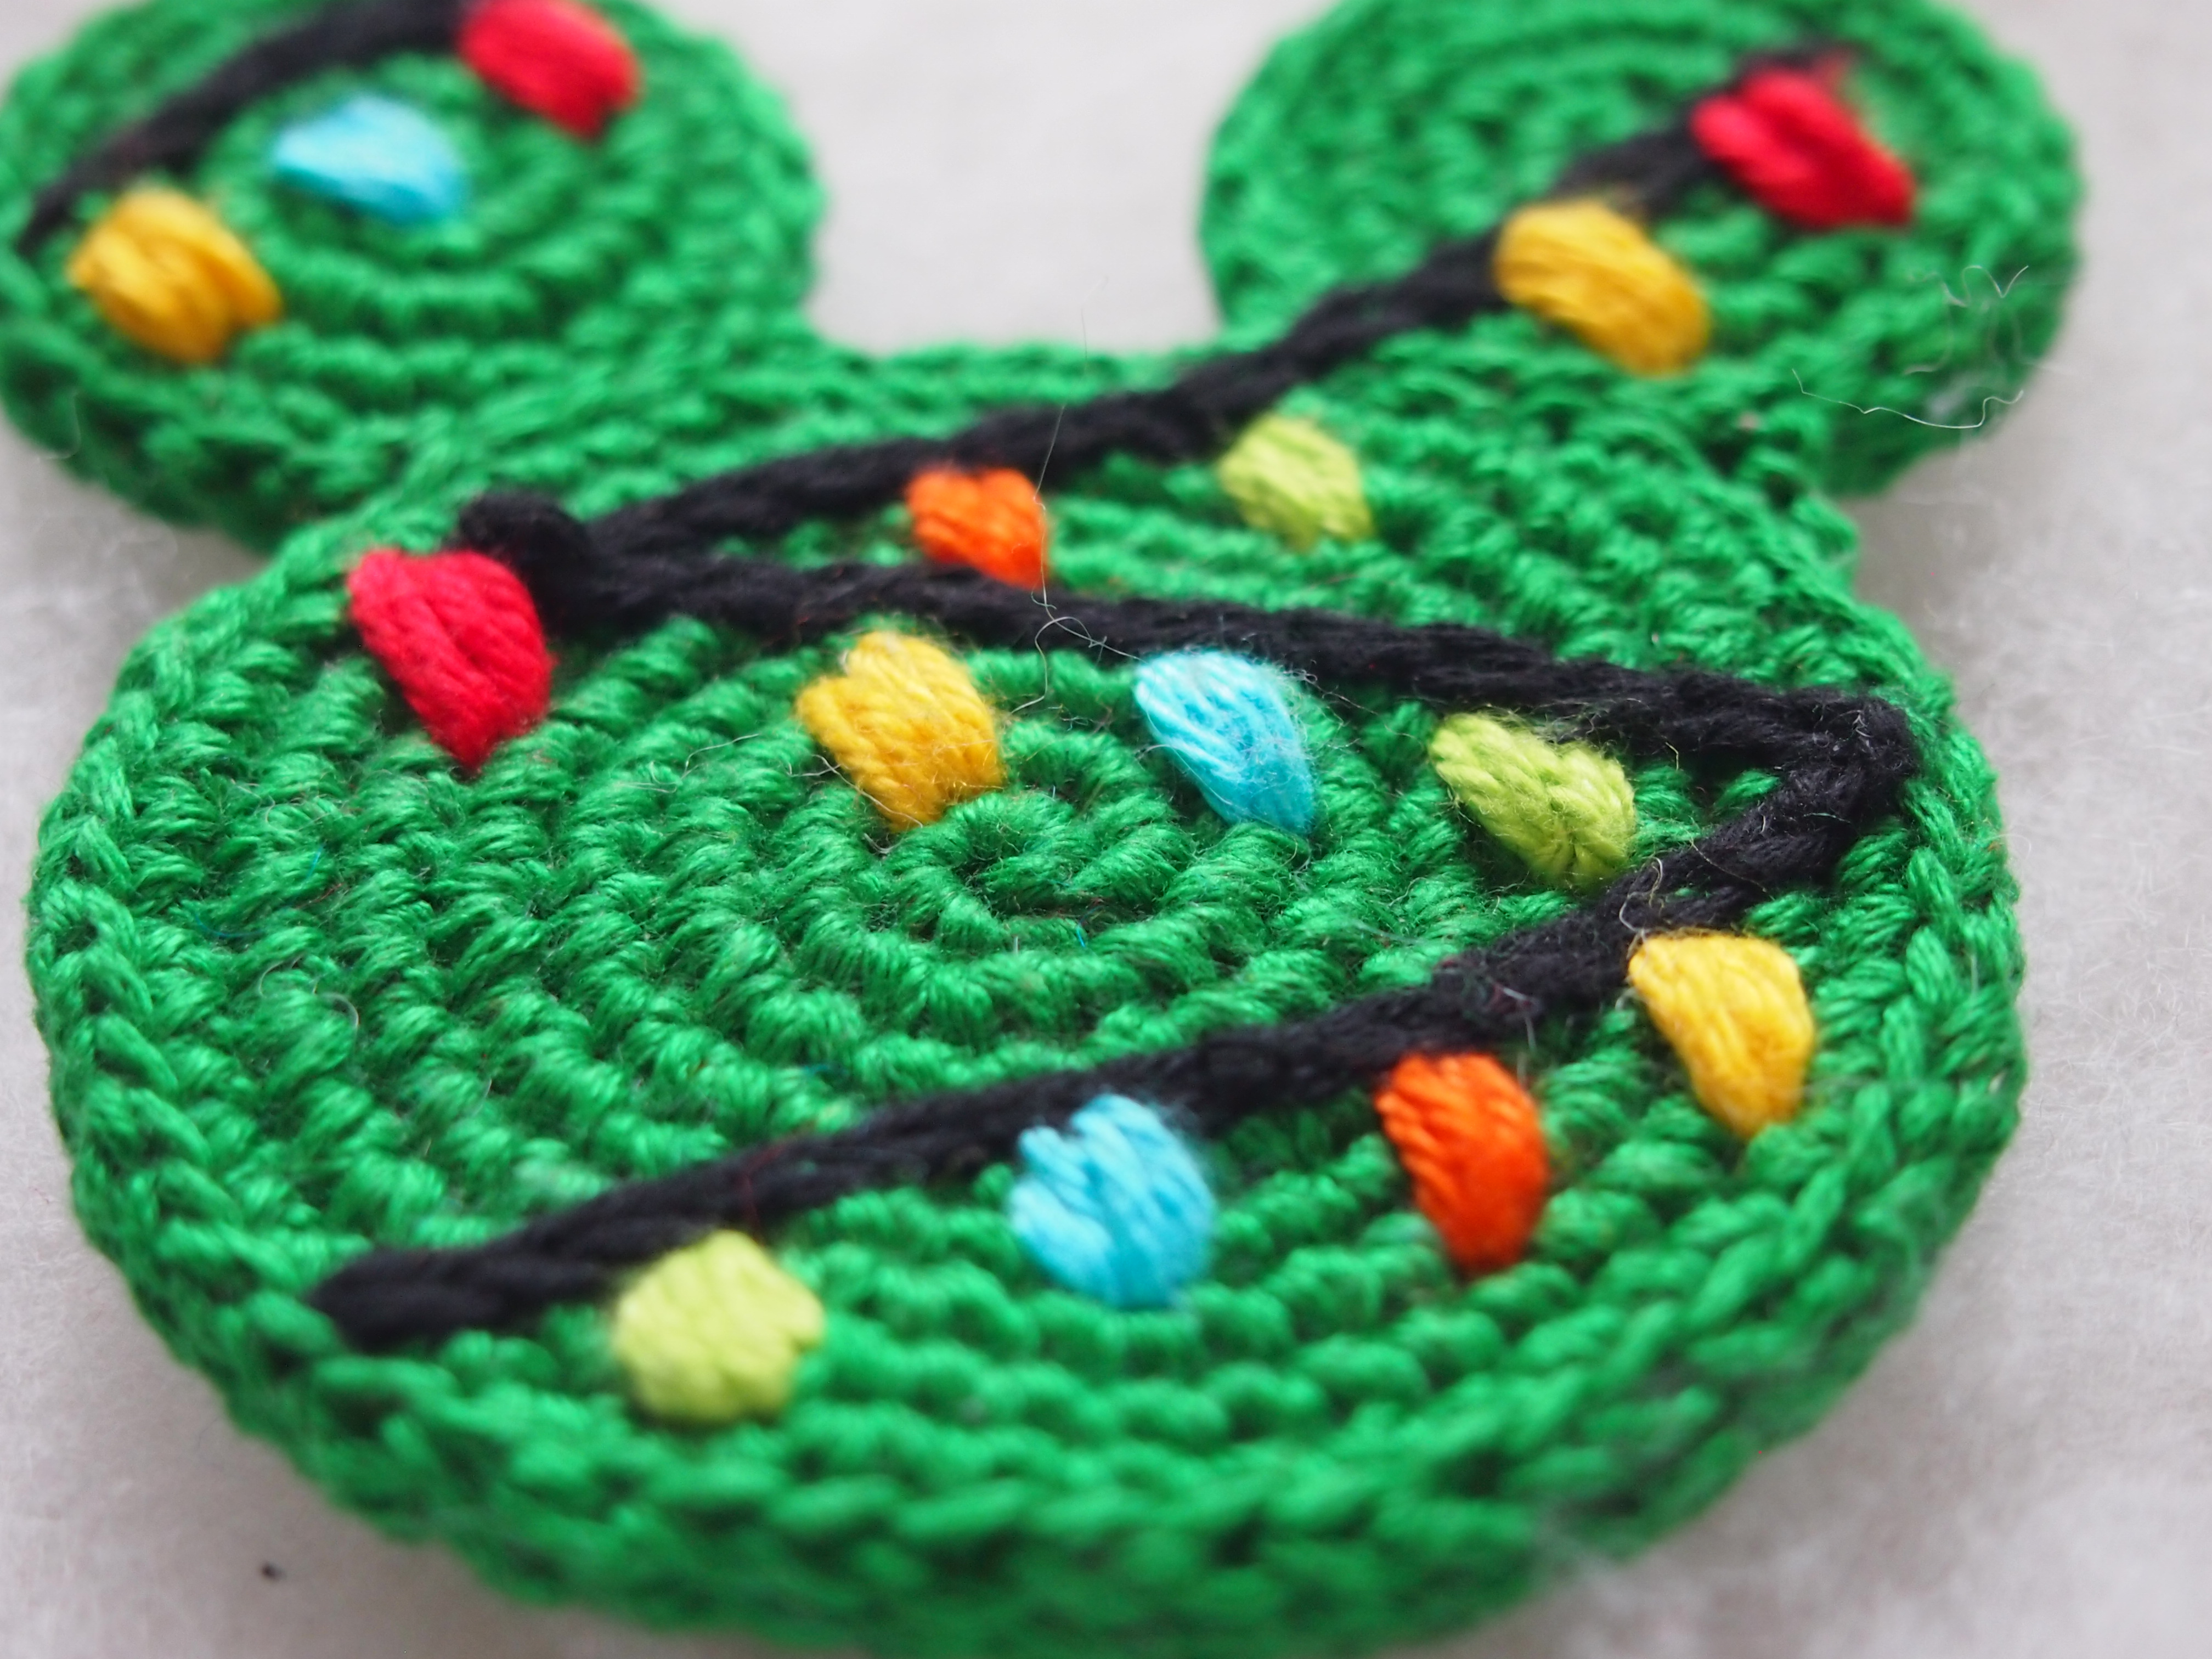 Crochet Christmas Ornaments Patterns | The WHOot | 3024x4032